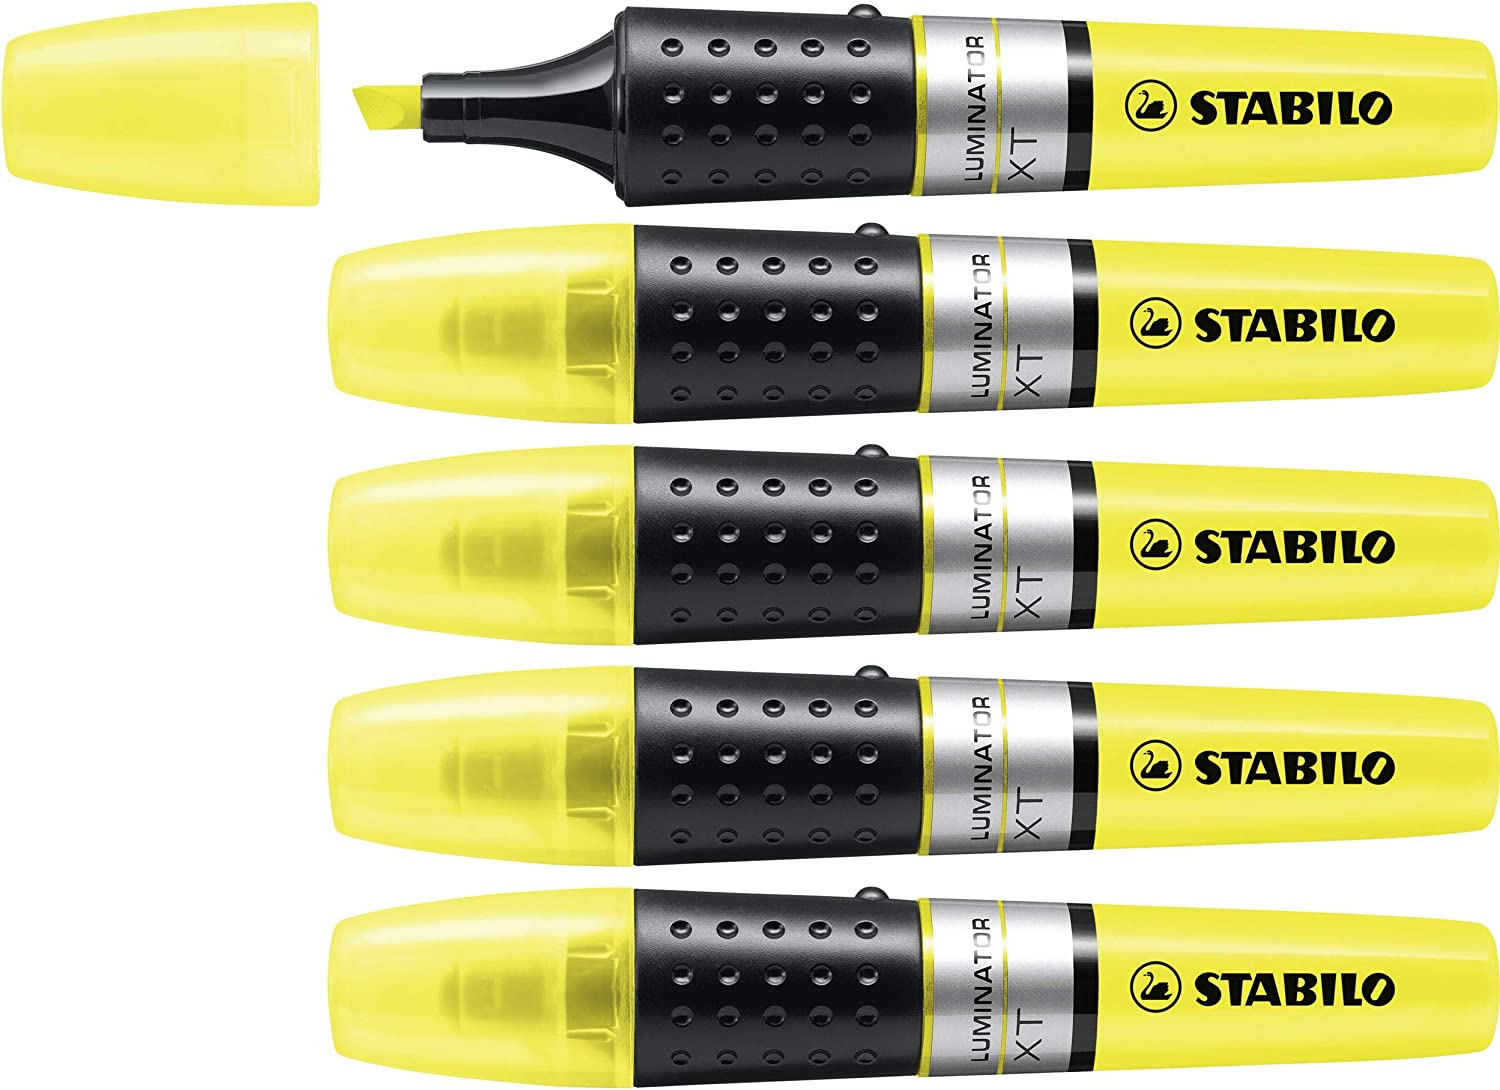 STABILO sold out 71 24 LUMINATOR - 5 Phoenix Mall Pack of Yellow Highlighter